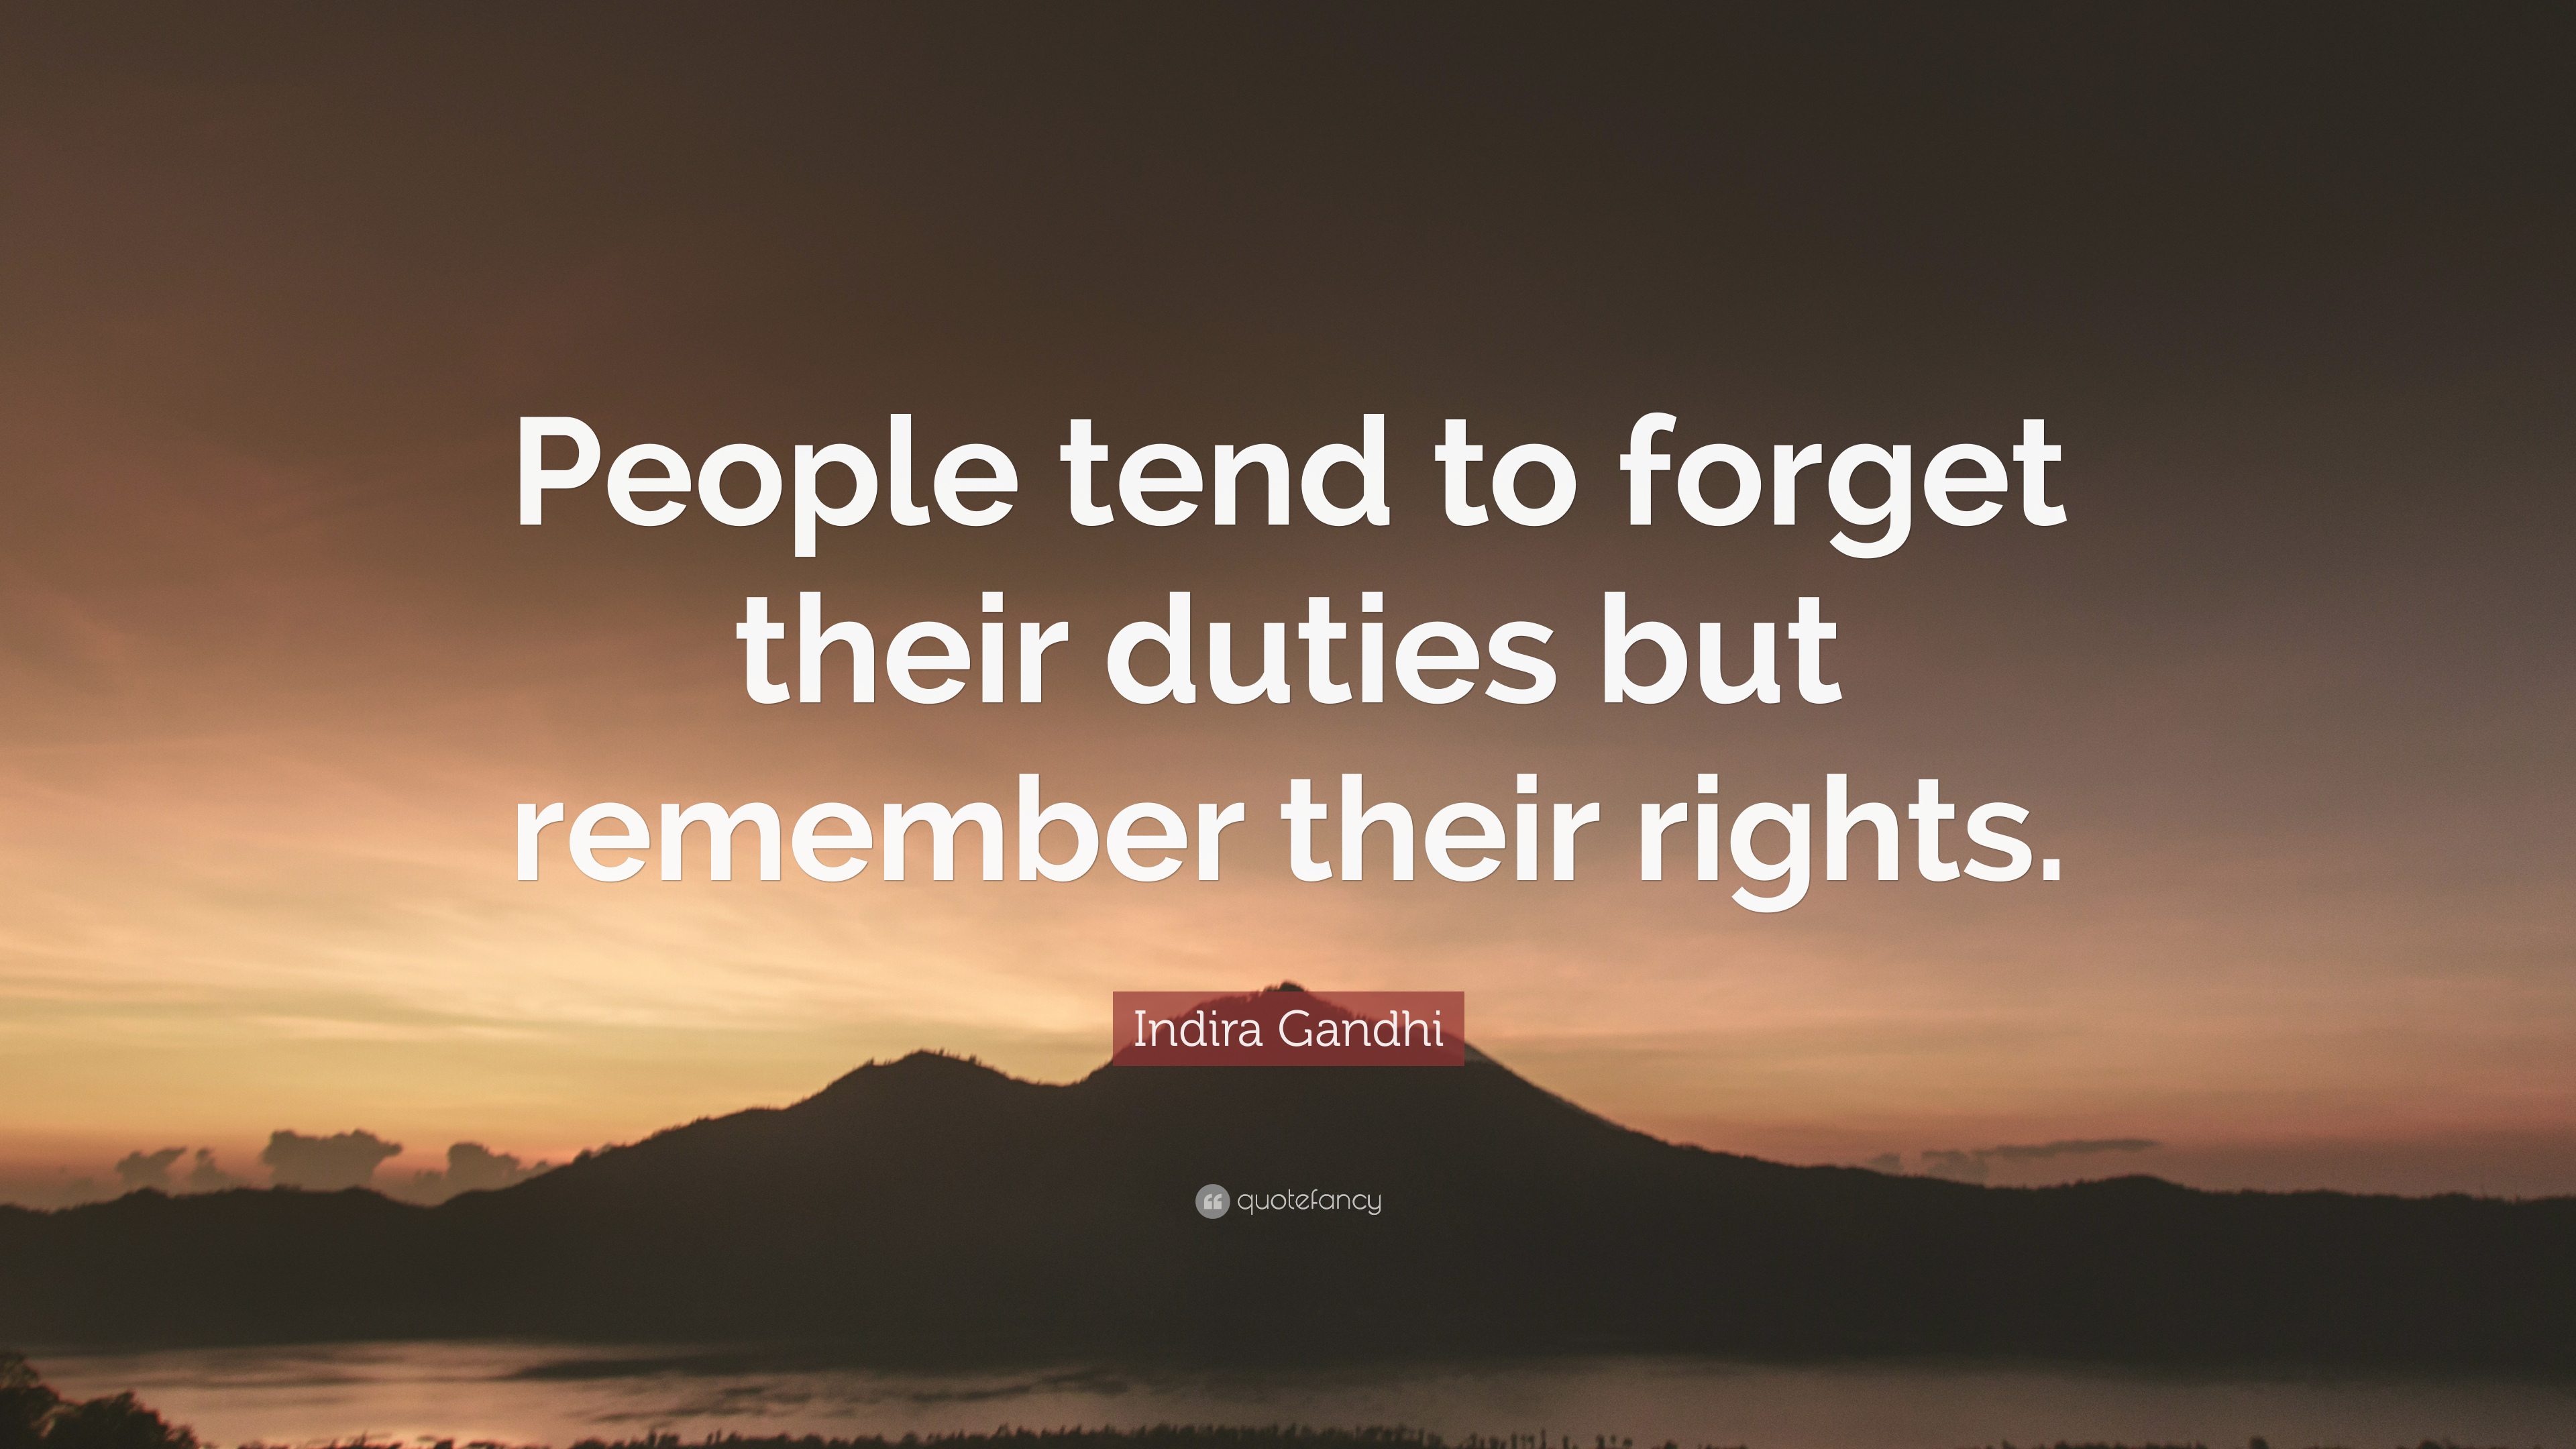 Indira gandhi quote people tend to forget their duties but indira gandhi quote people tend to forget their duties but remember their rights altavistaventures Images